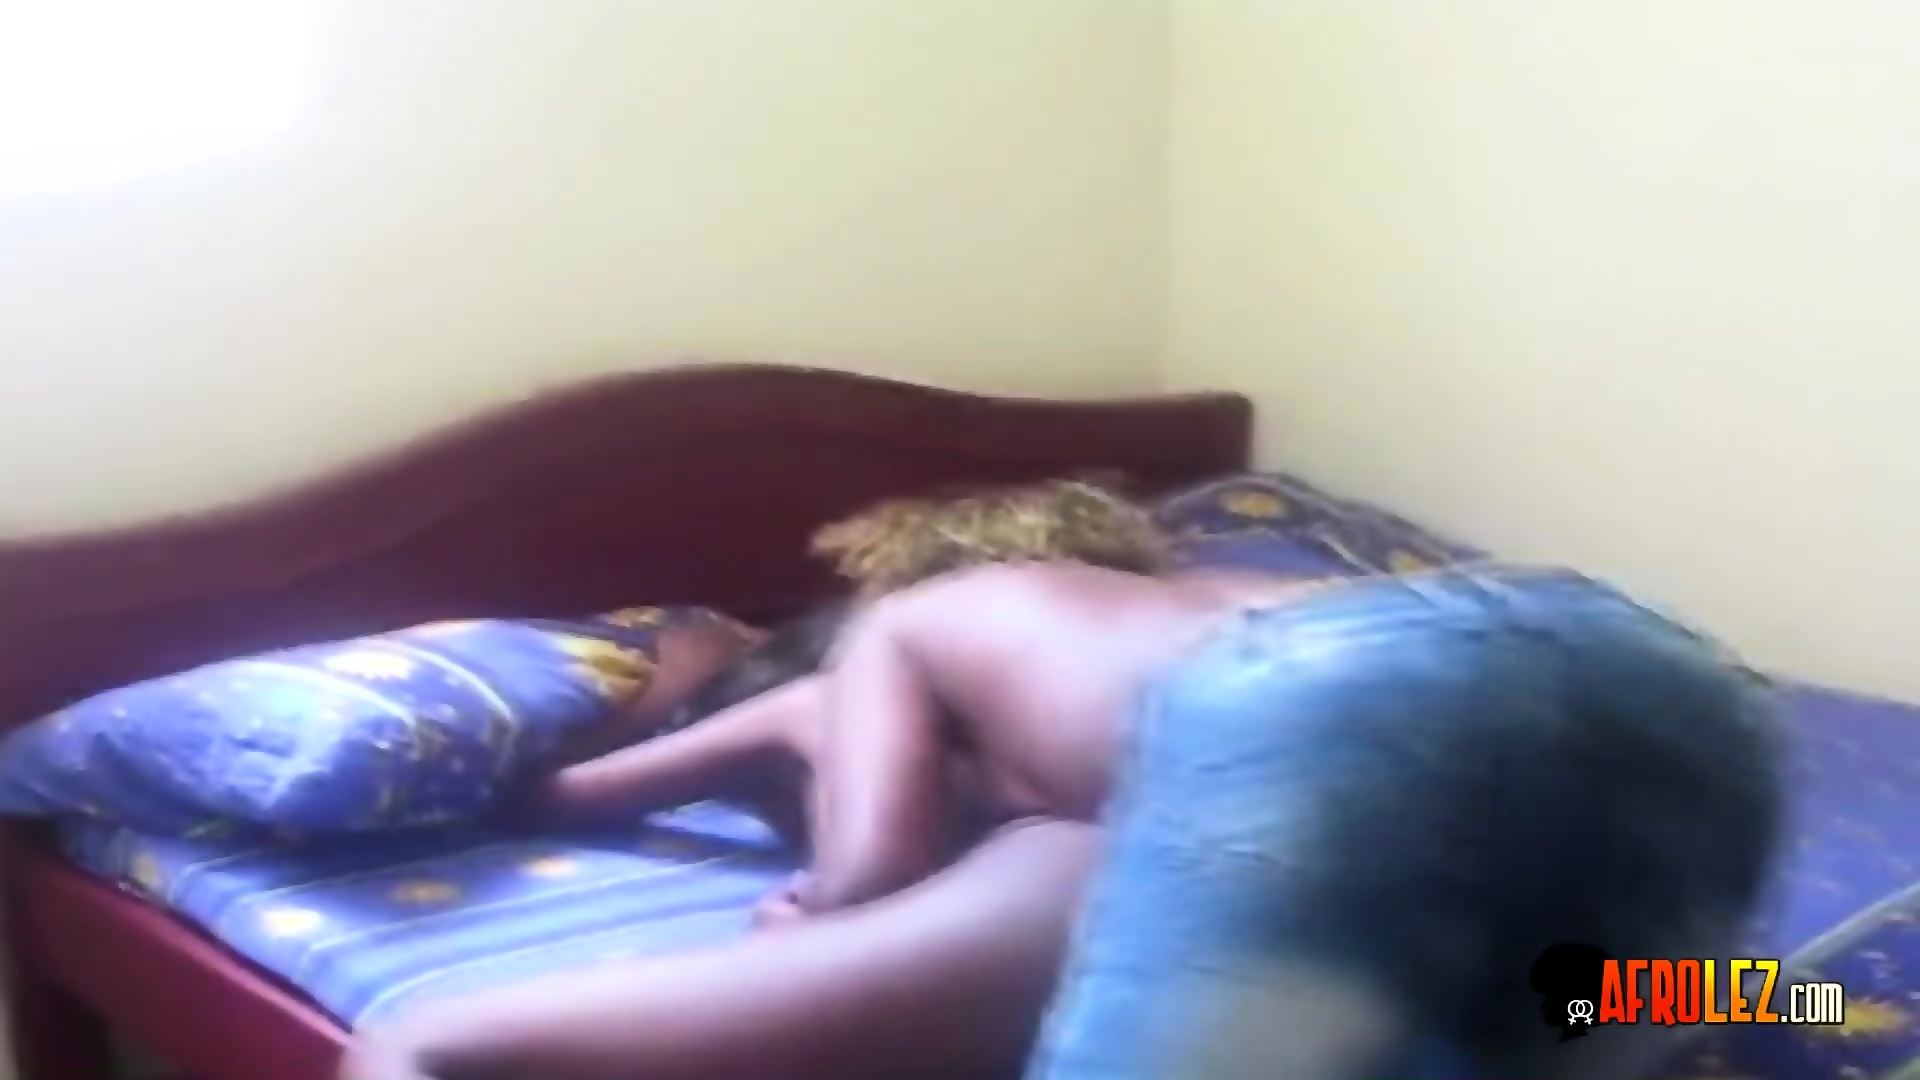 11 couple video african sex